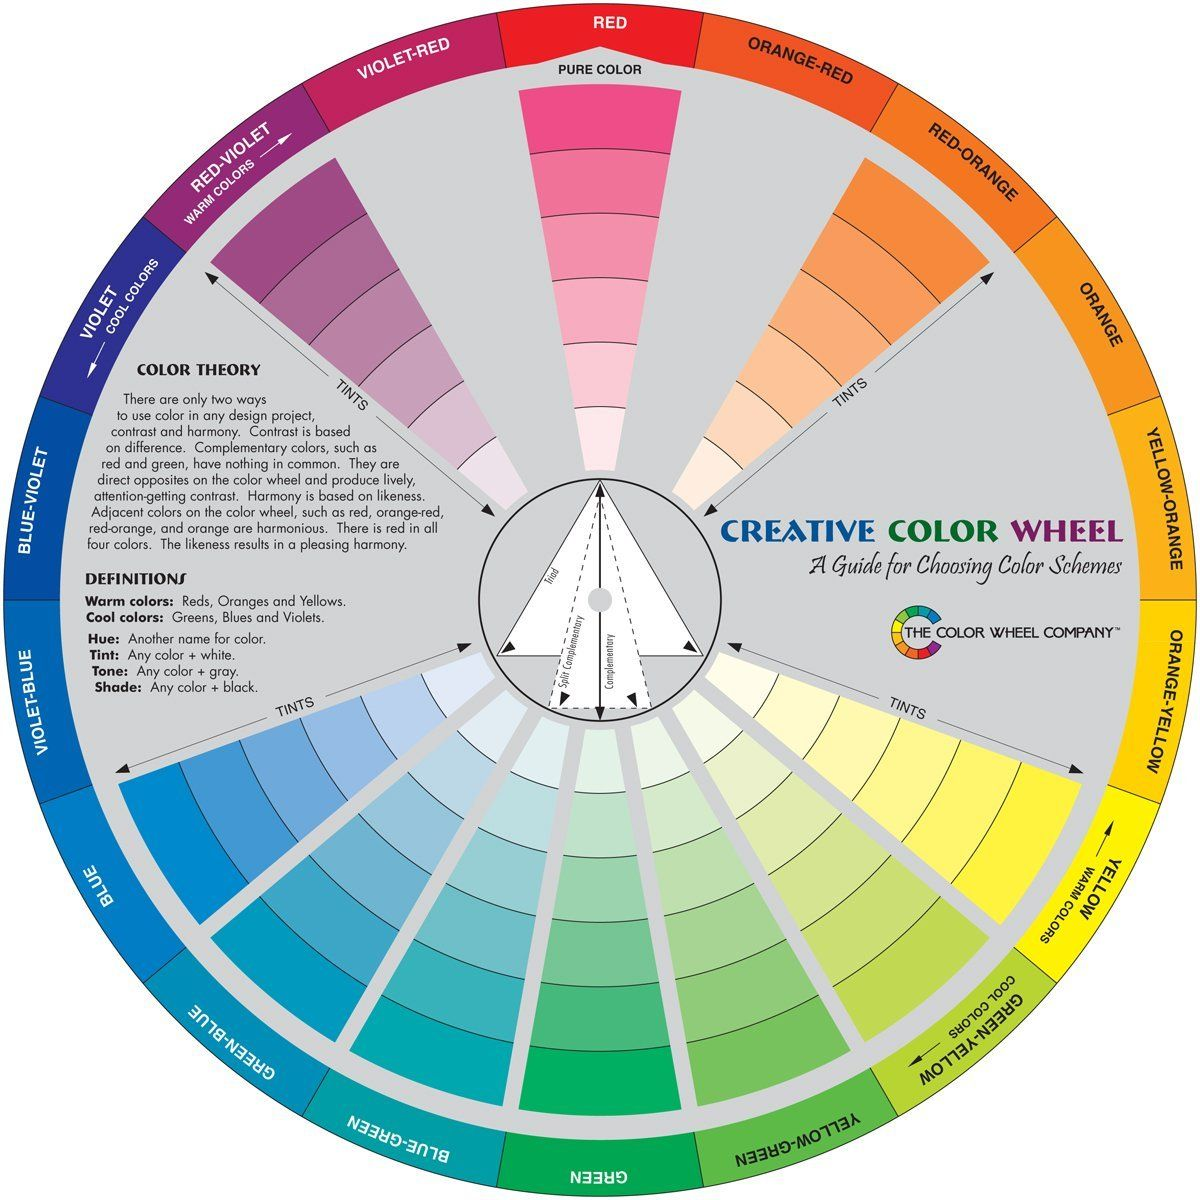 Amazon.com: Creative Color Wheel-: Arts, Crafts & Sewing